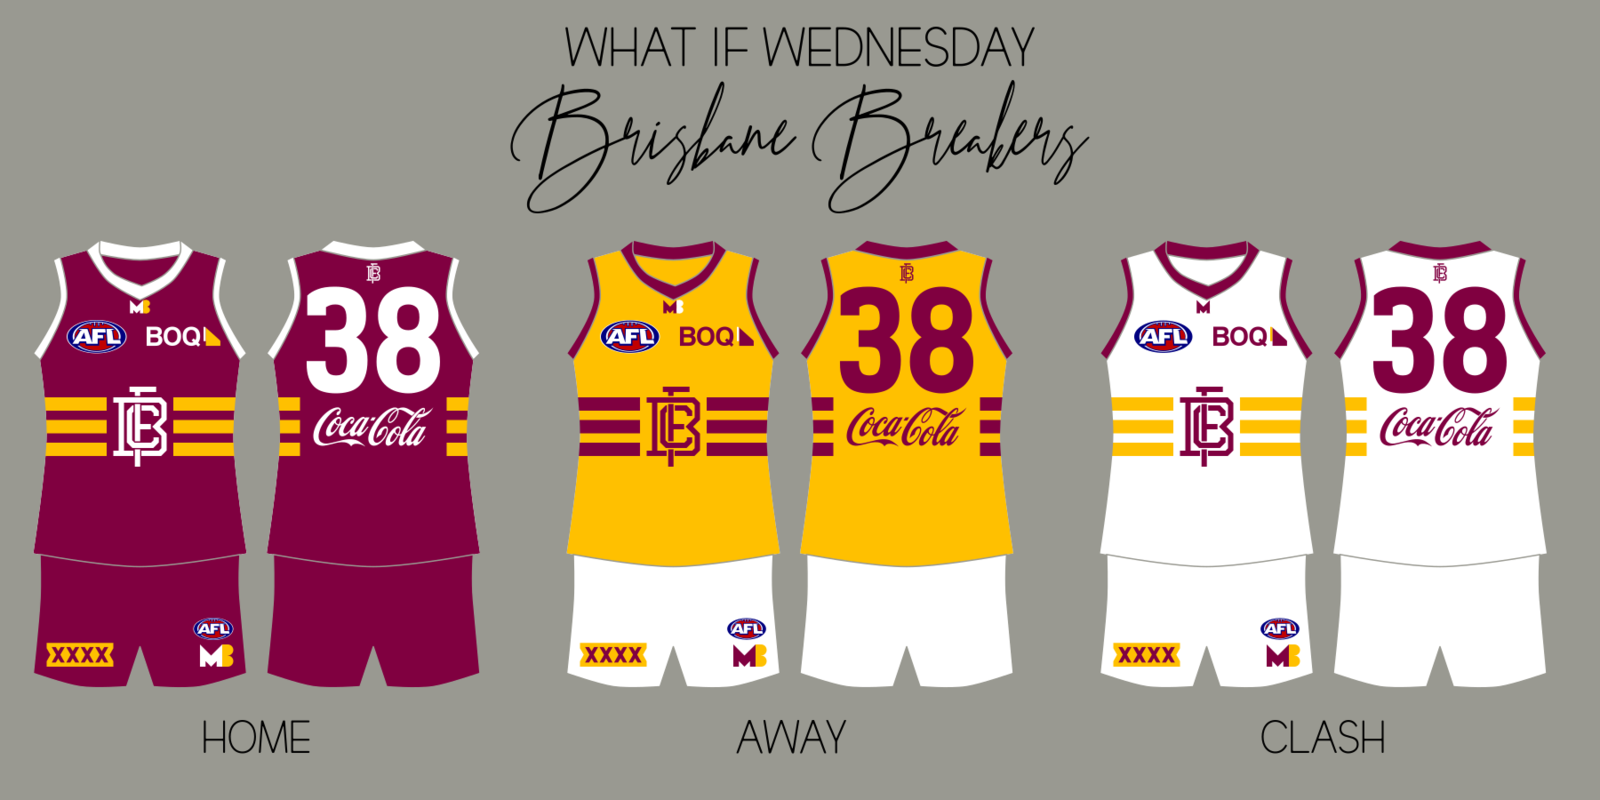 x03 Brisbane Breakers.png